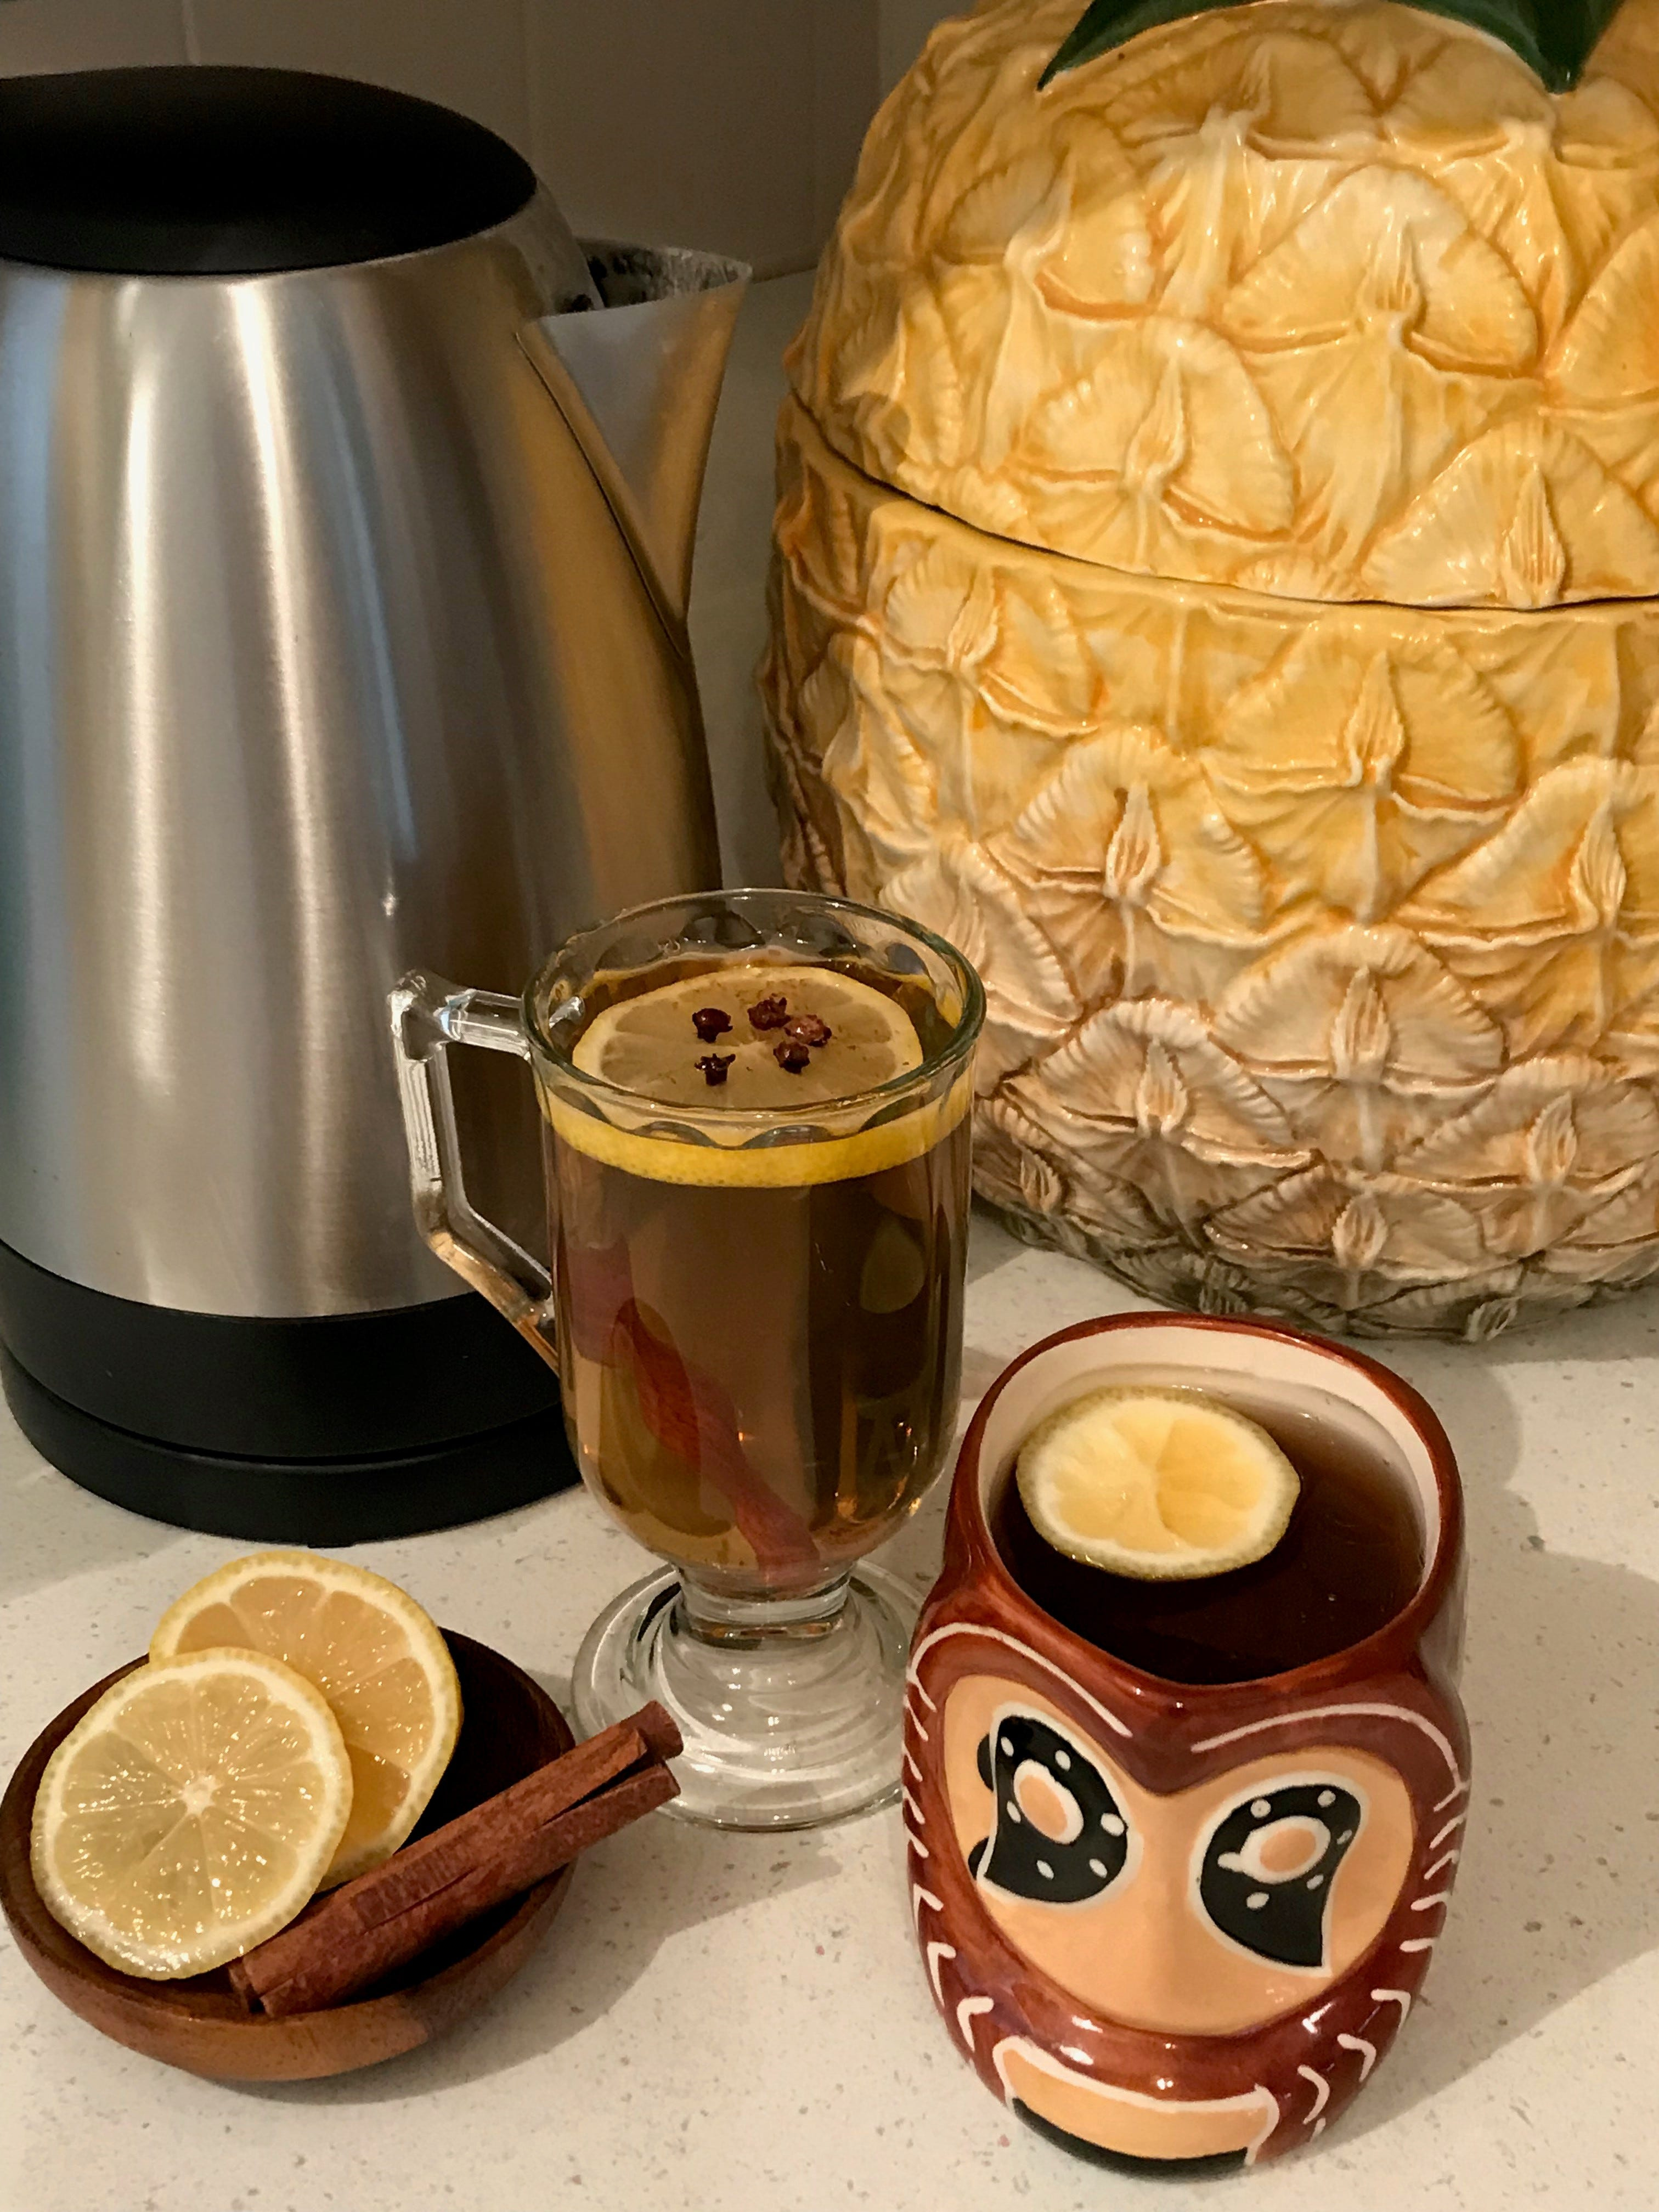 636554230608057988-CheersToddy Cheers! Feeling under the weather? These hot toddy cocktails just might cure what ails you